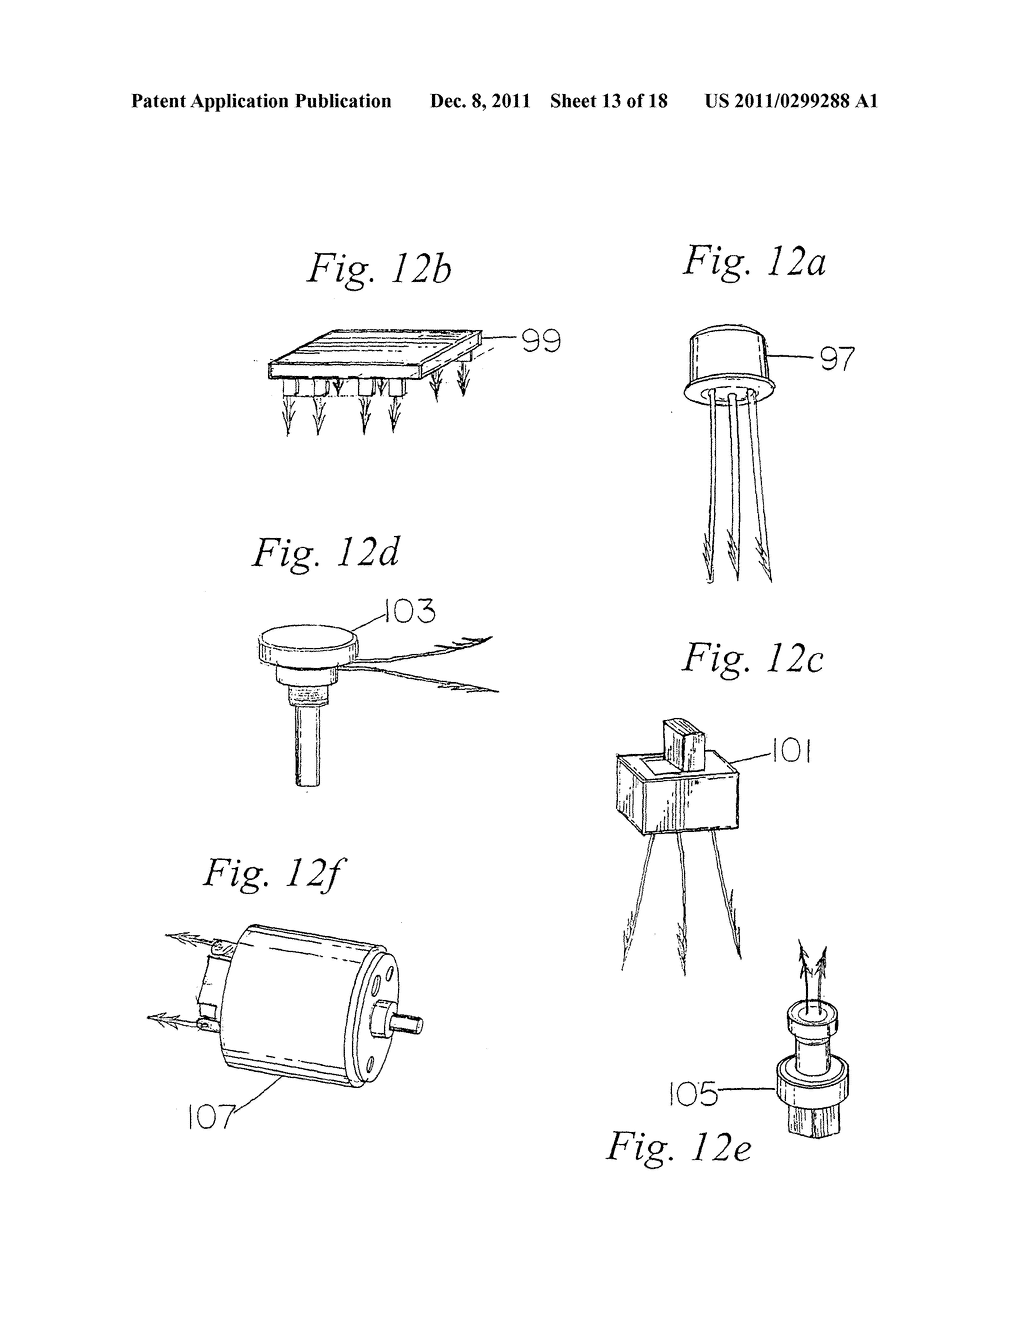 Solder and Lead Free Electronic Circuit and Method of Manufacturing Same - diagram, schematic, and image 14